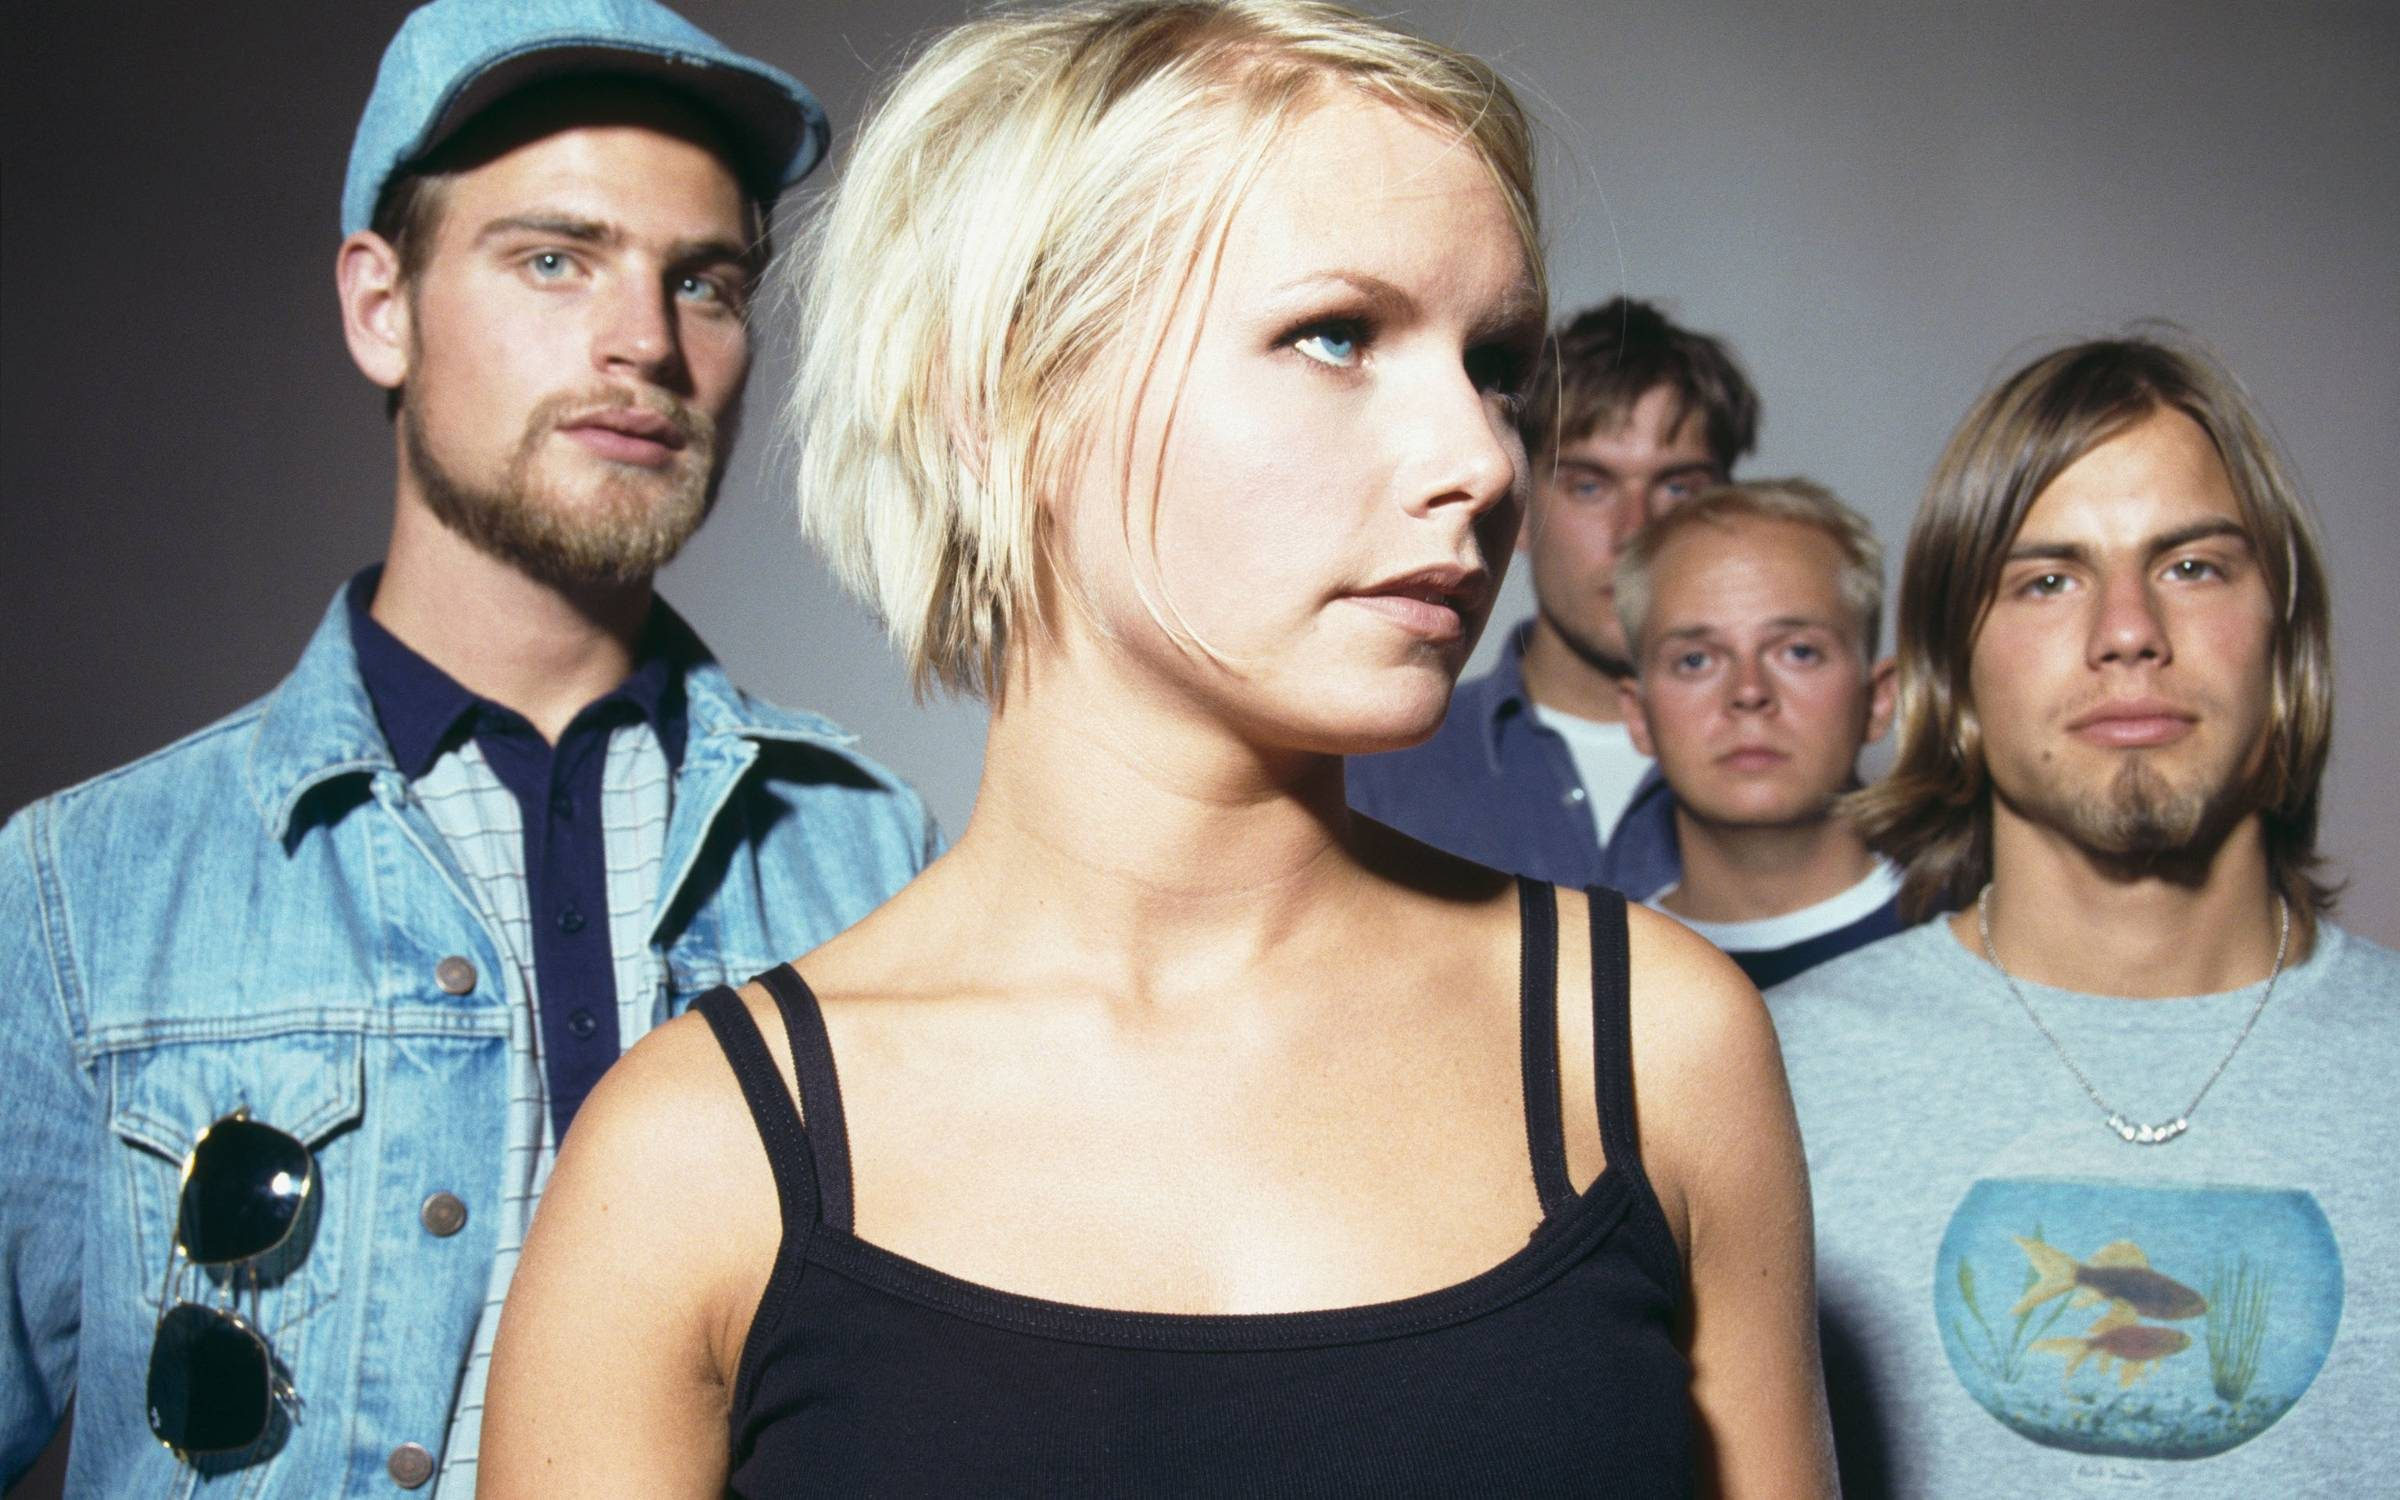 Swedish pop group The Cardigans, circa 1997. Credit: Andy Willsher/Redferns/Getty Images